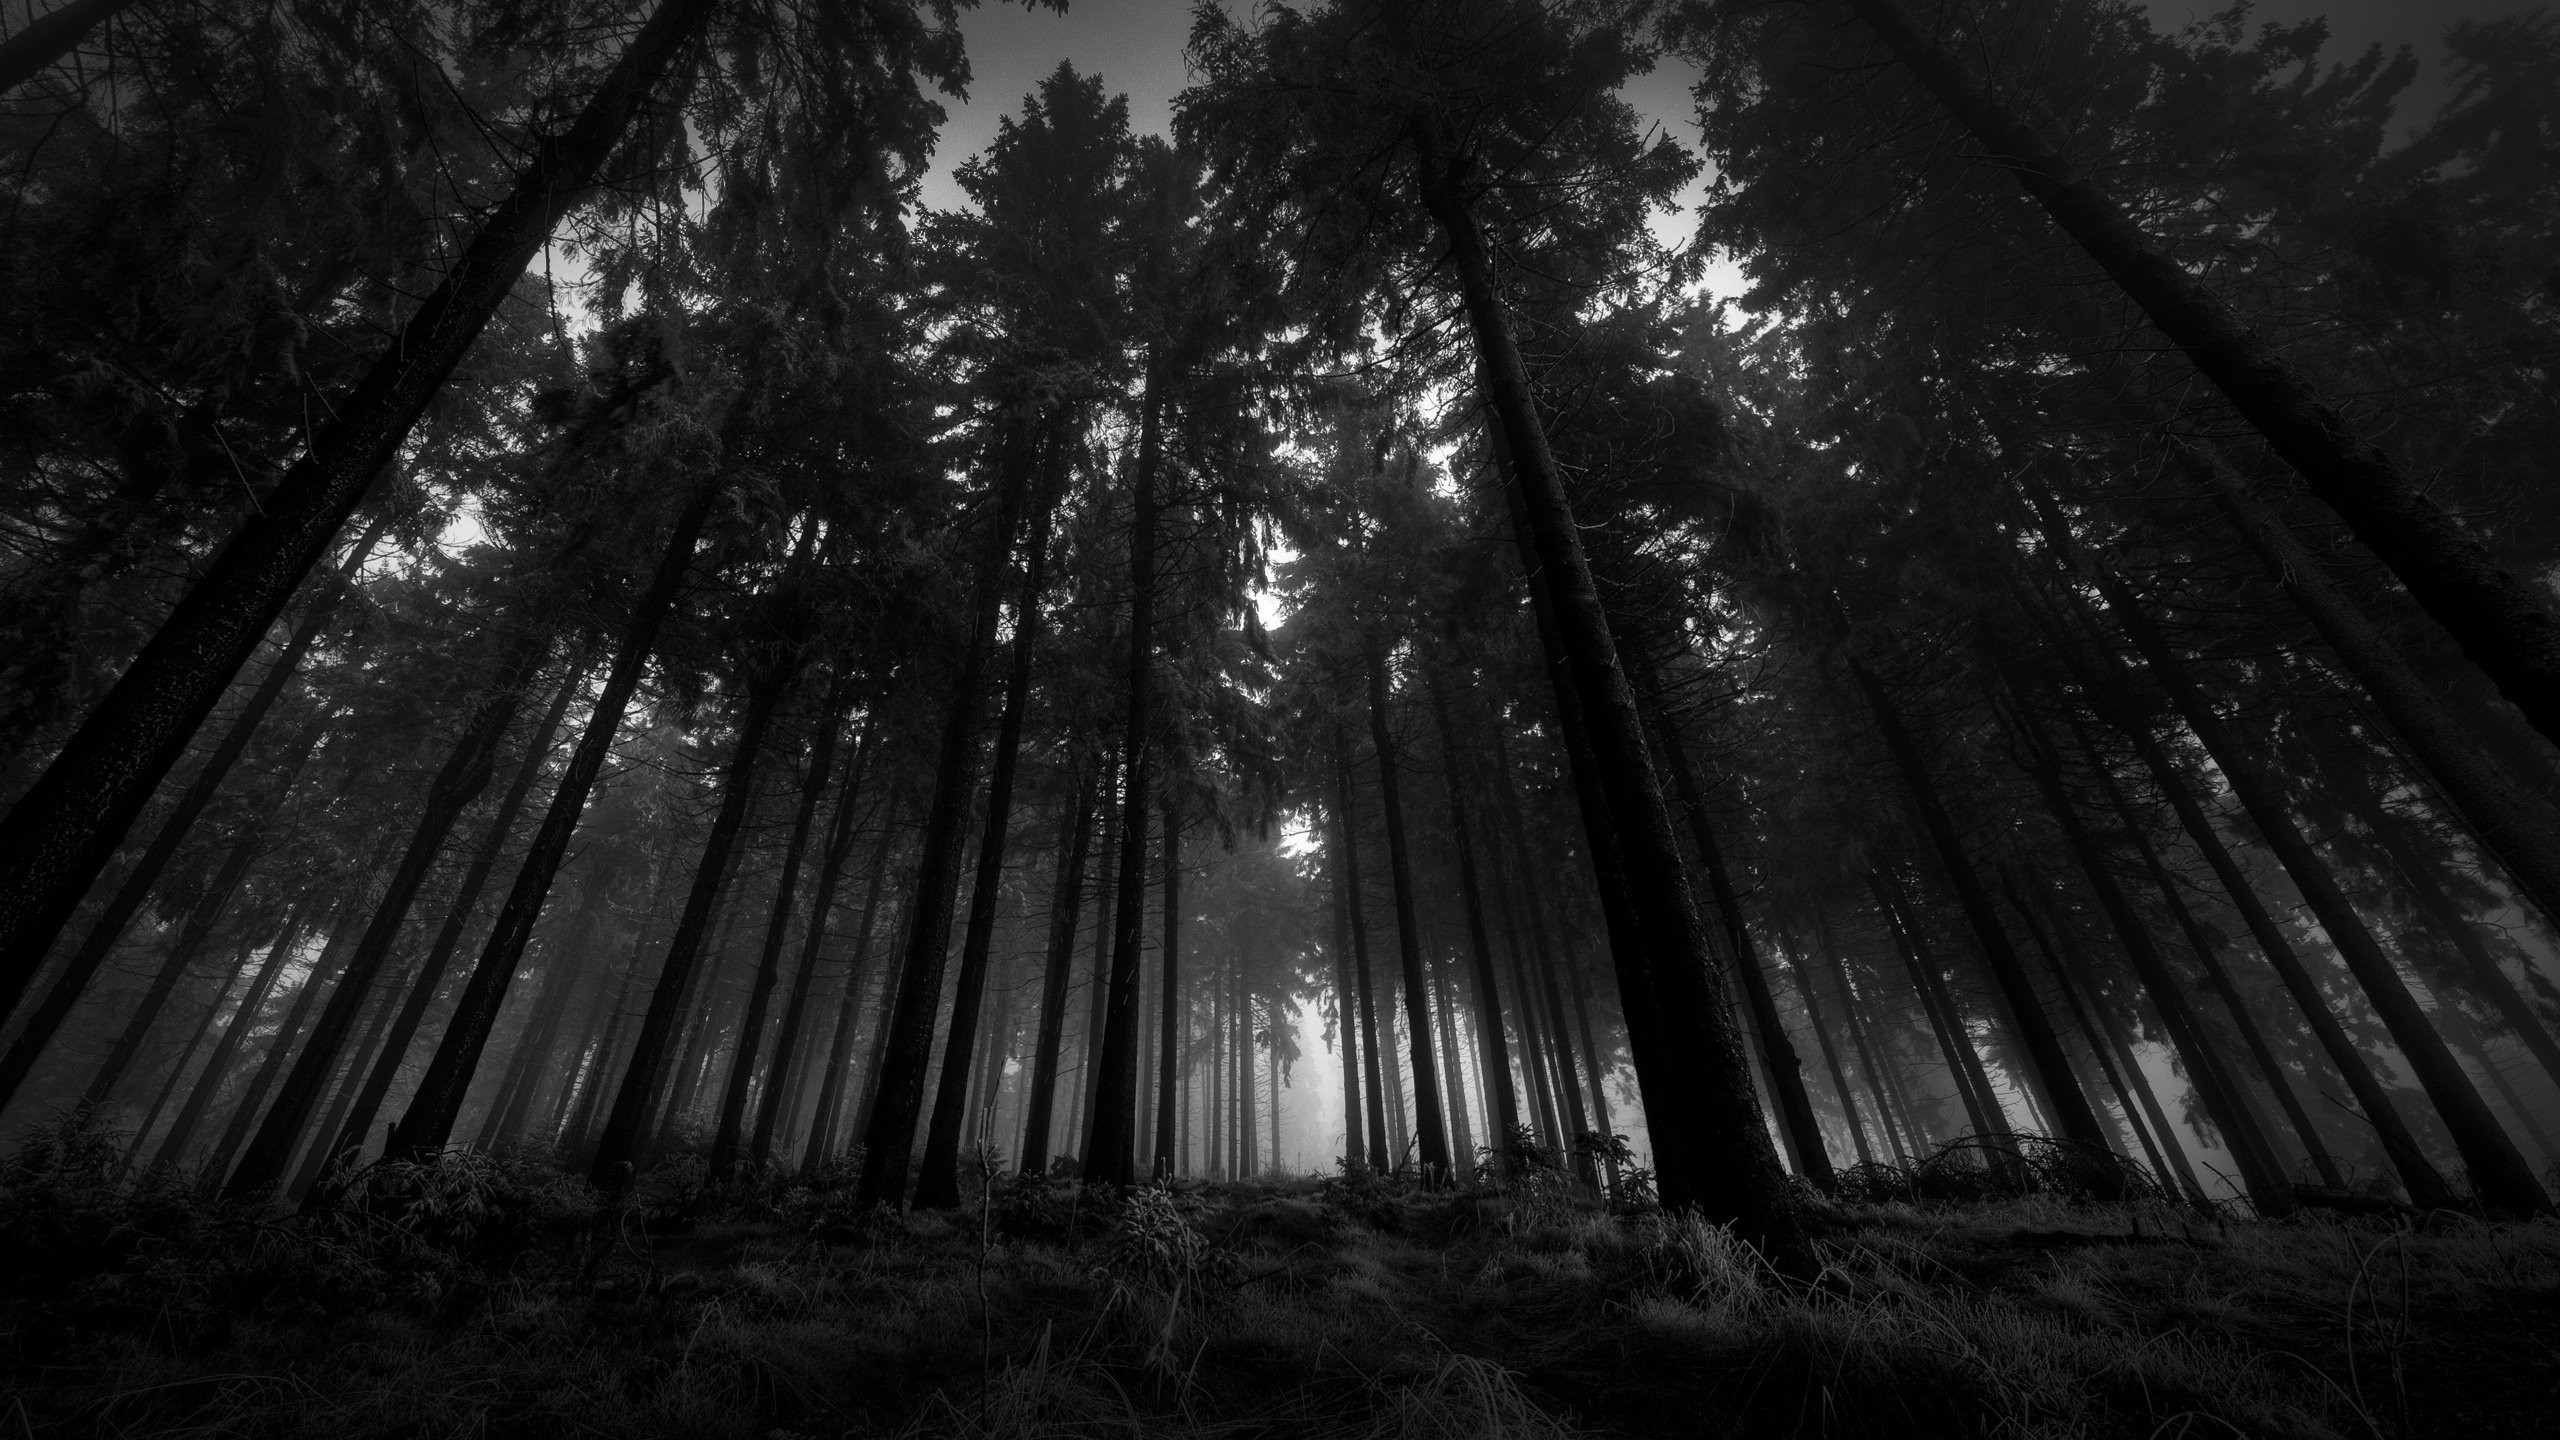 wallpaper.wiki-Download-Free-Black-and-White-Forest-Wallpaper-PIC-WPB008675